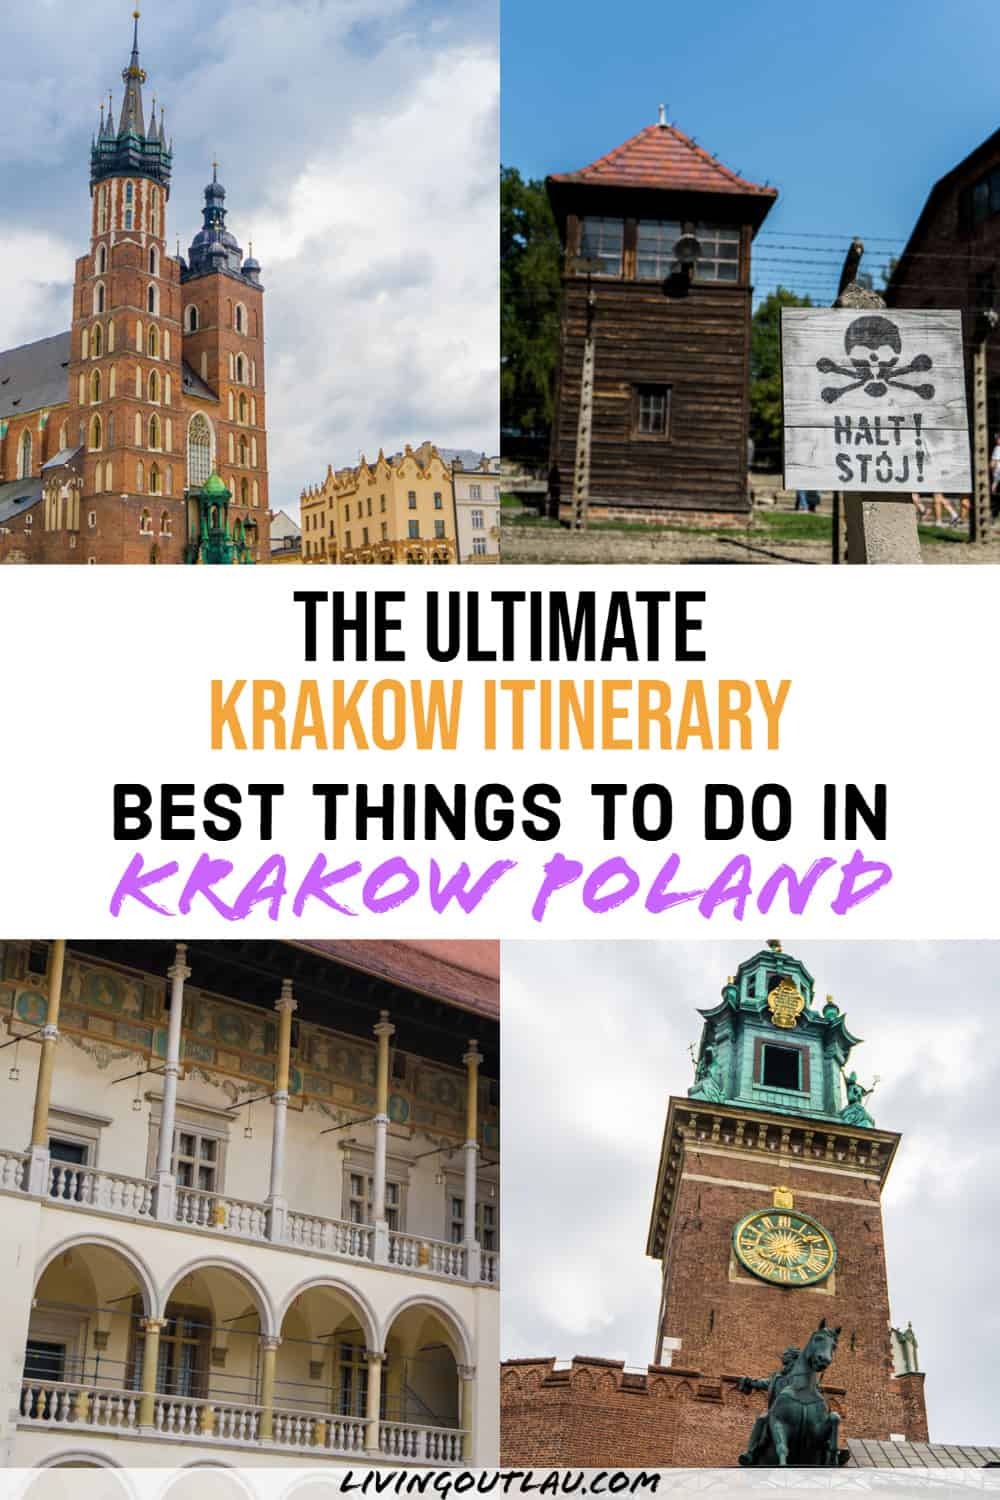 Things To Do In Krakow Itinerary Pinterest